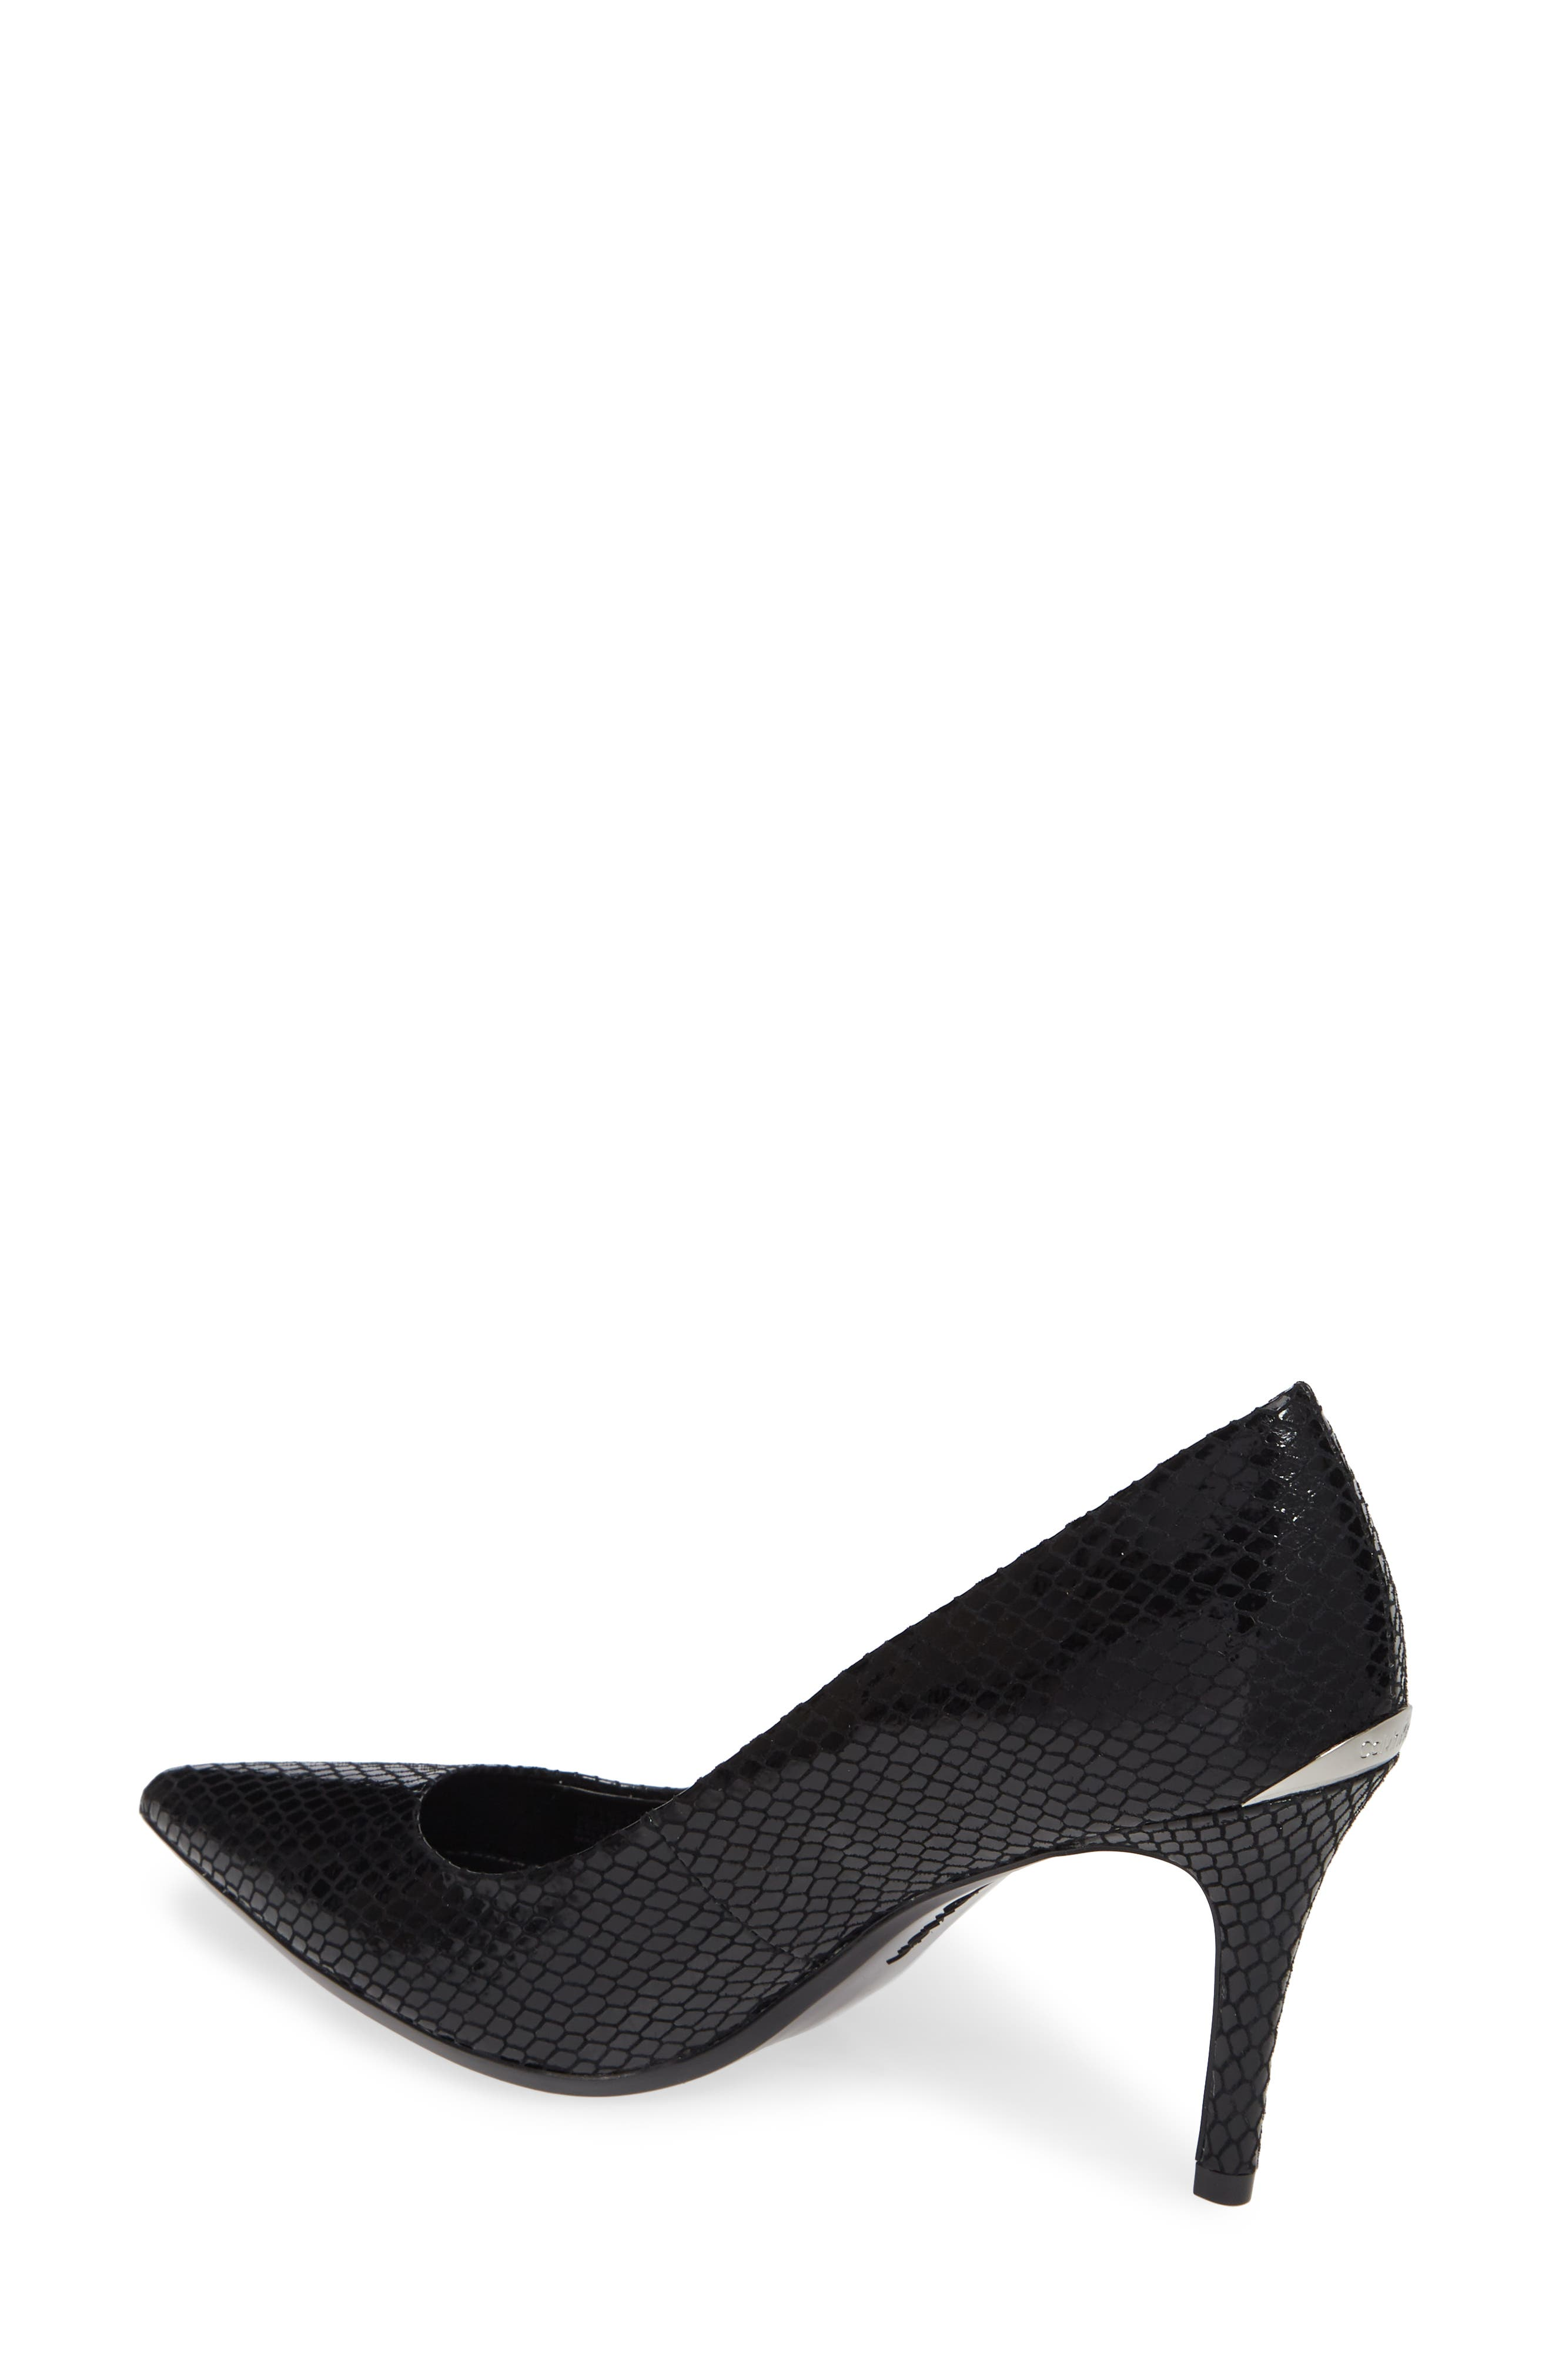 CALVIN KLEIN,                             'Gayle' Pointy Toe Pump,                             Alternate thumbnail 2, color,                             BLACK SNAKE PRINT LEATHER